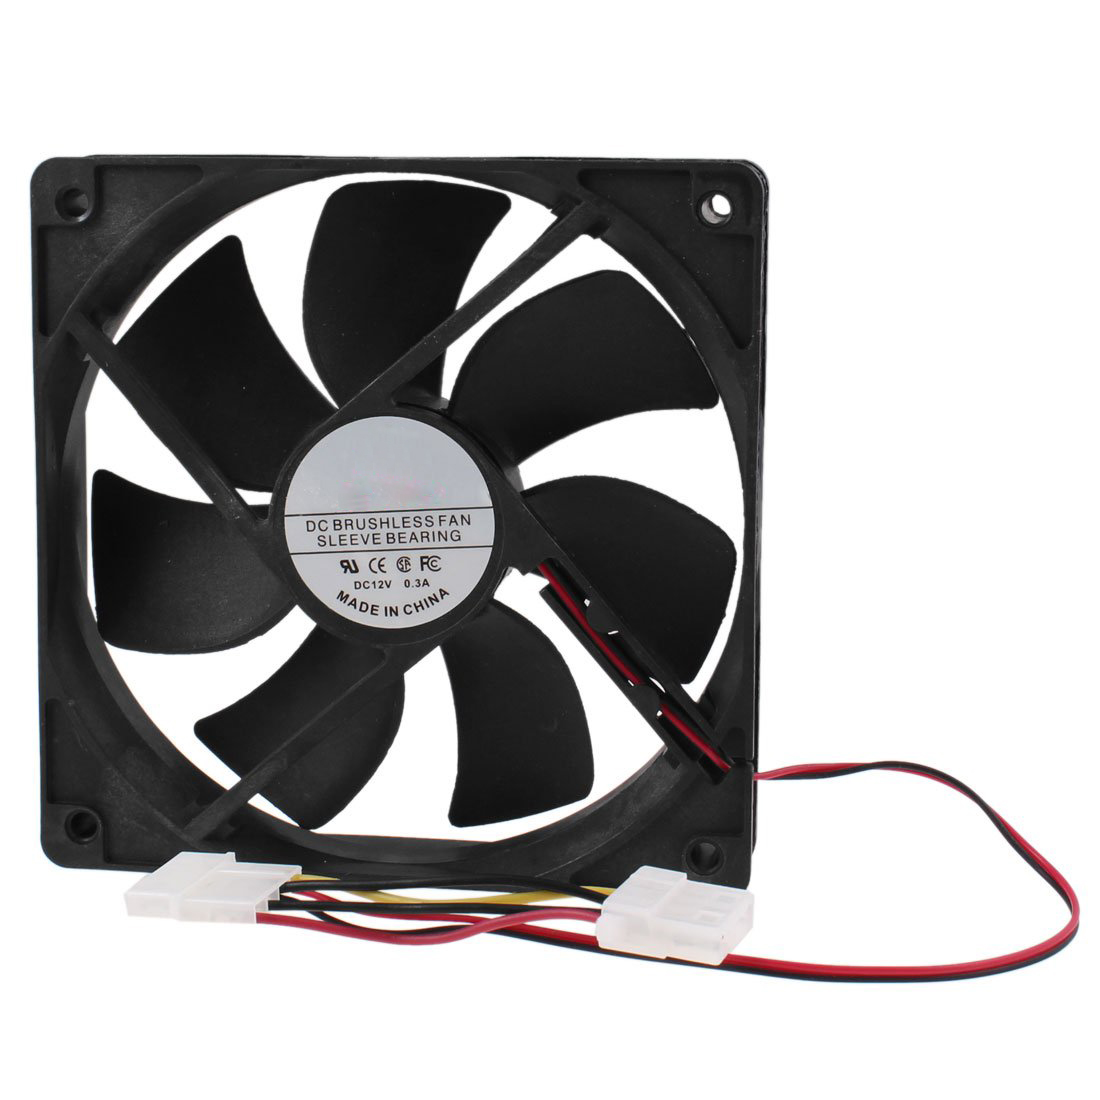 PC Brushless DC Cooling Fan 4 Pin Connector 7 Blades 12V 12cm 120mm original delta afc1212de 12038 12cm 120mm dc 12v 1 6a pwm ball fan thermostat inverter server cooling fan